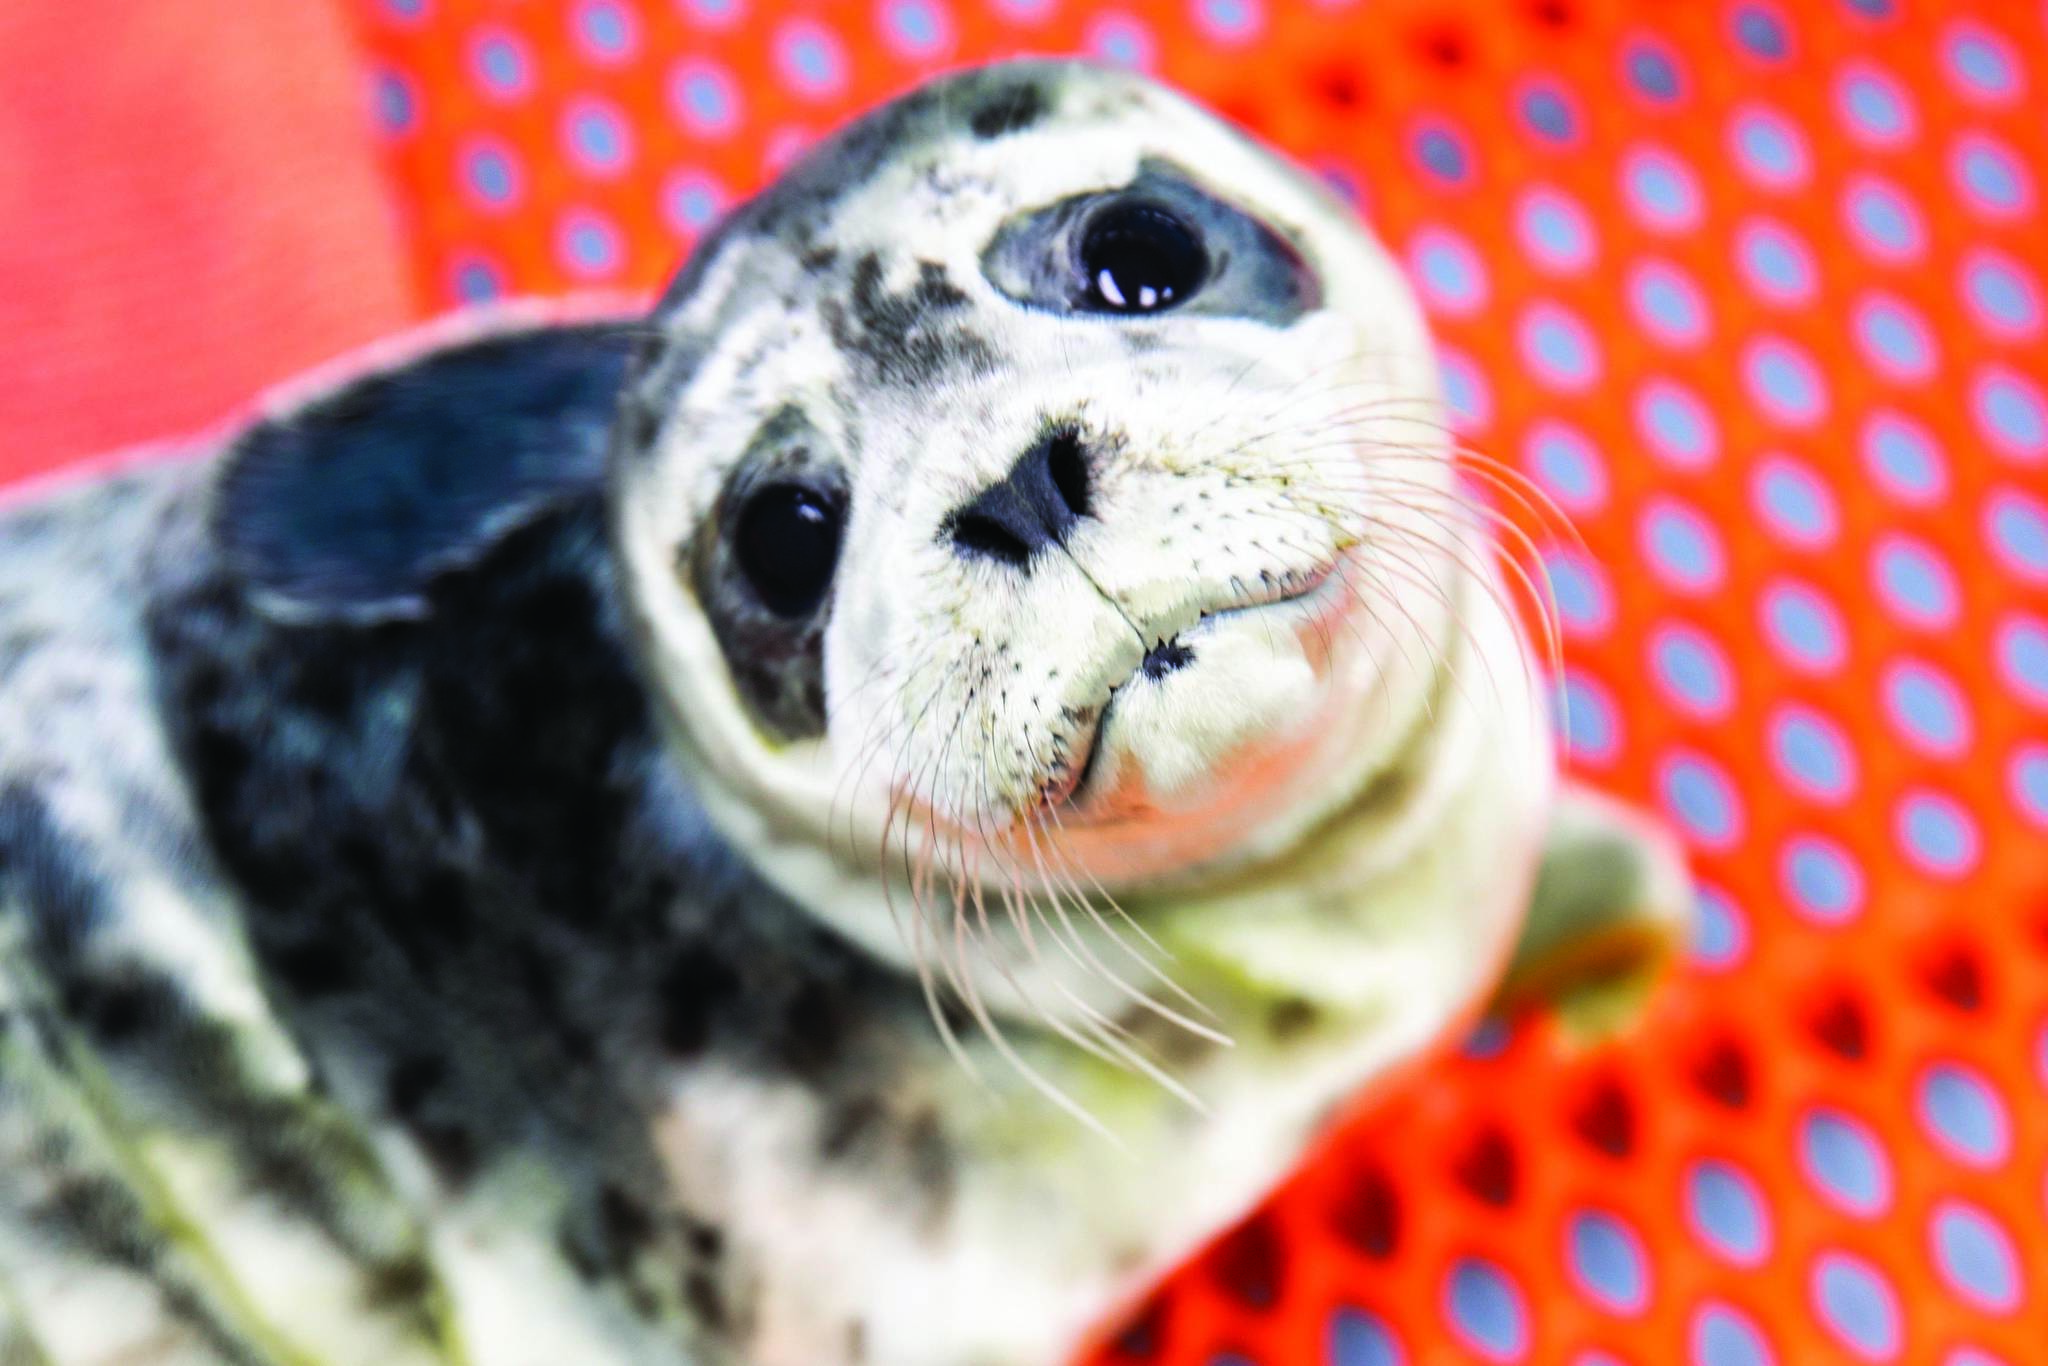 Courtesy Chloe Rossman / Alaska SeaLife Center                                 One of the recently rescued harbor seal pups is seen here at the Alaska SeaLife Center in Seward in this undated photo.